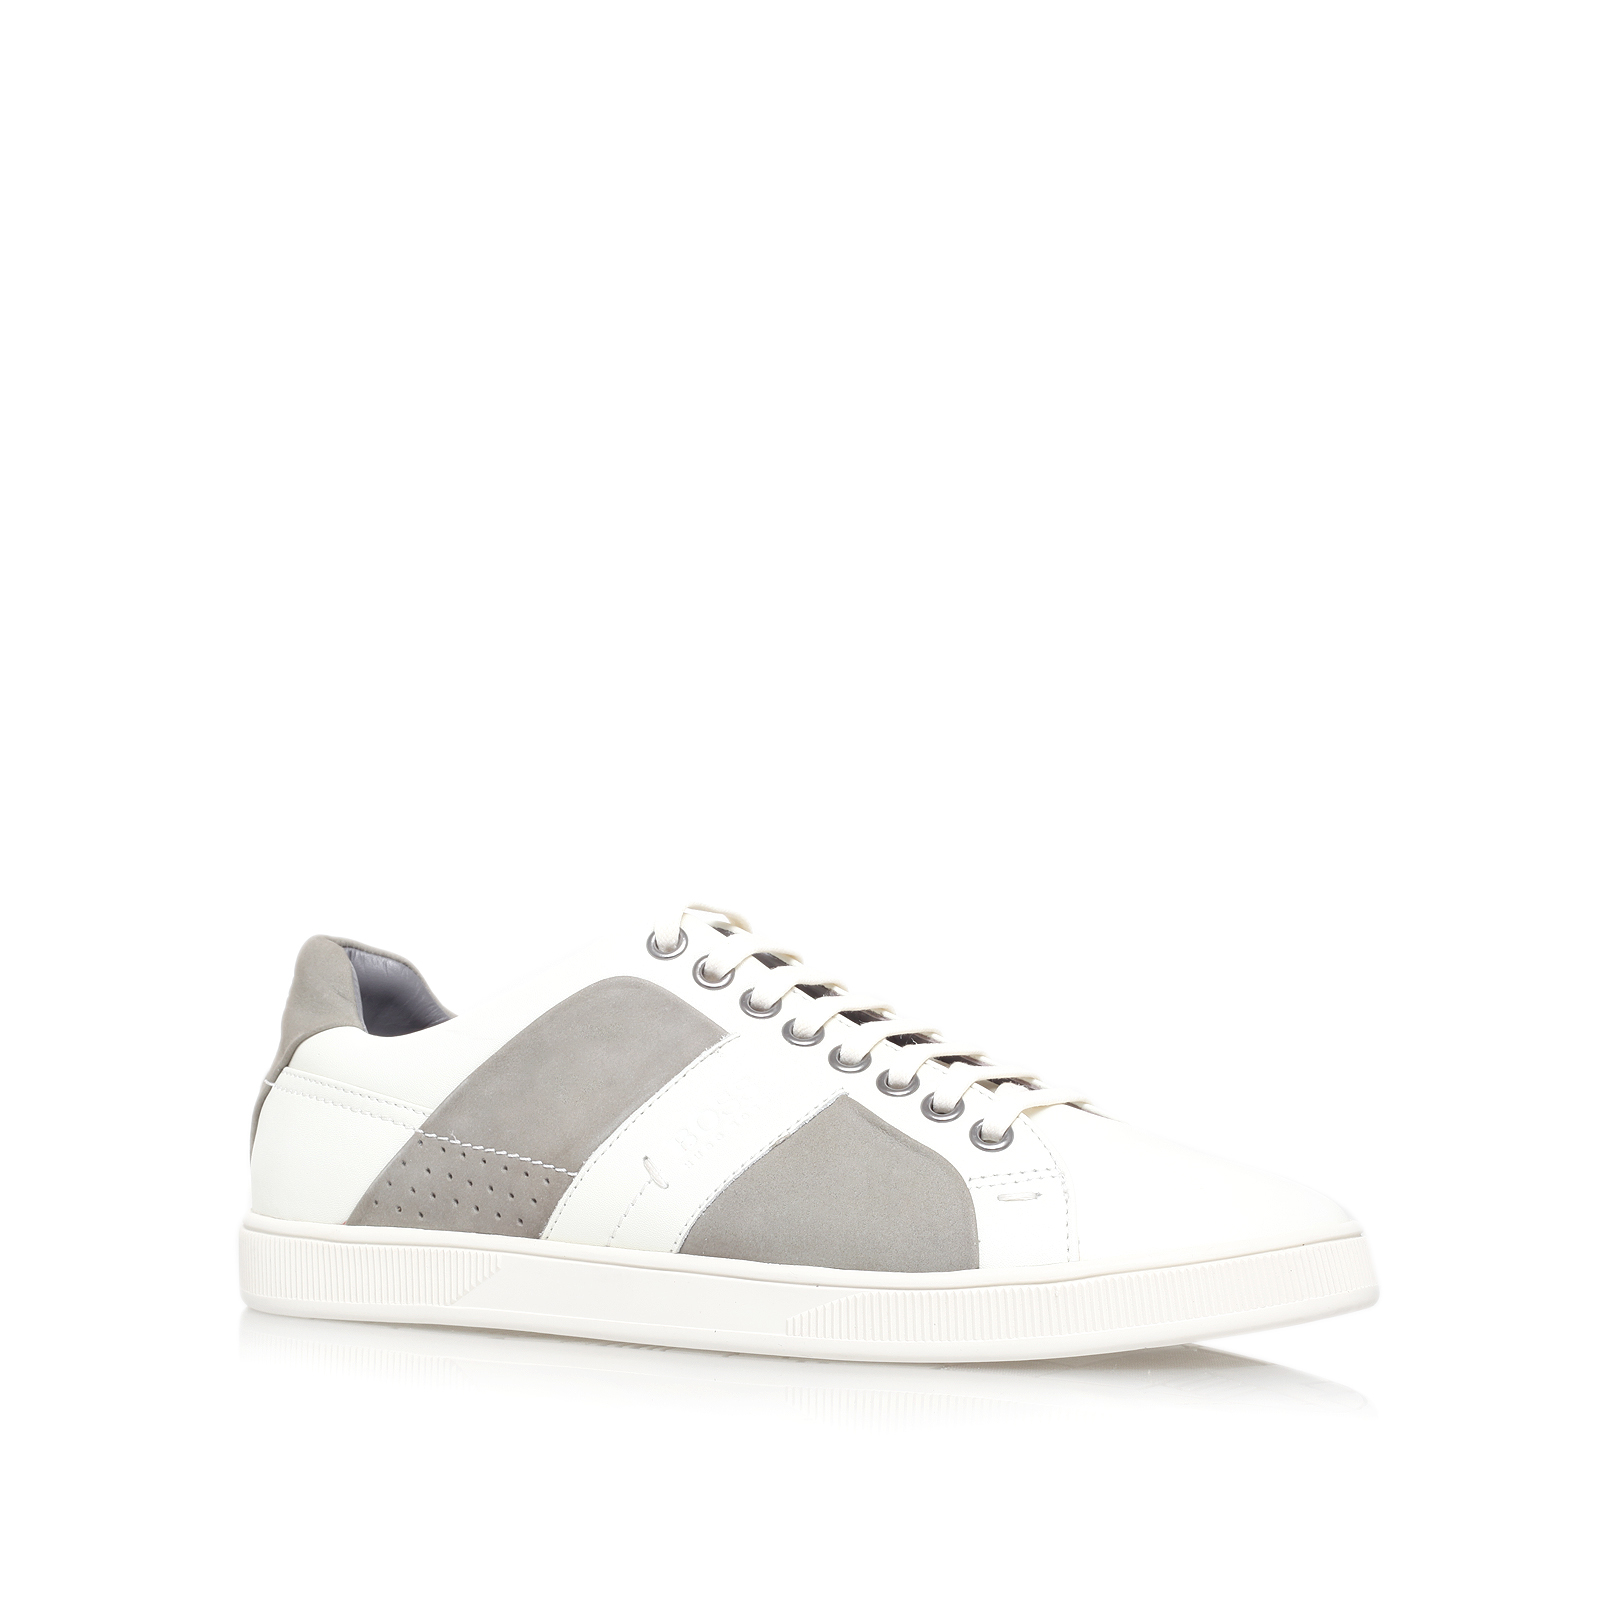 ACREST TENNIS SNEAKER